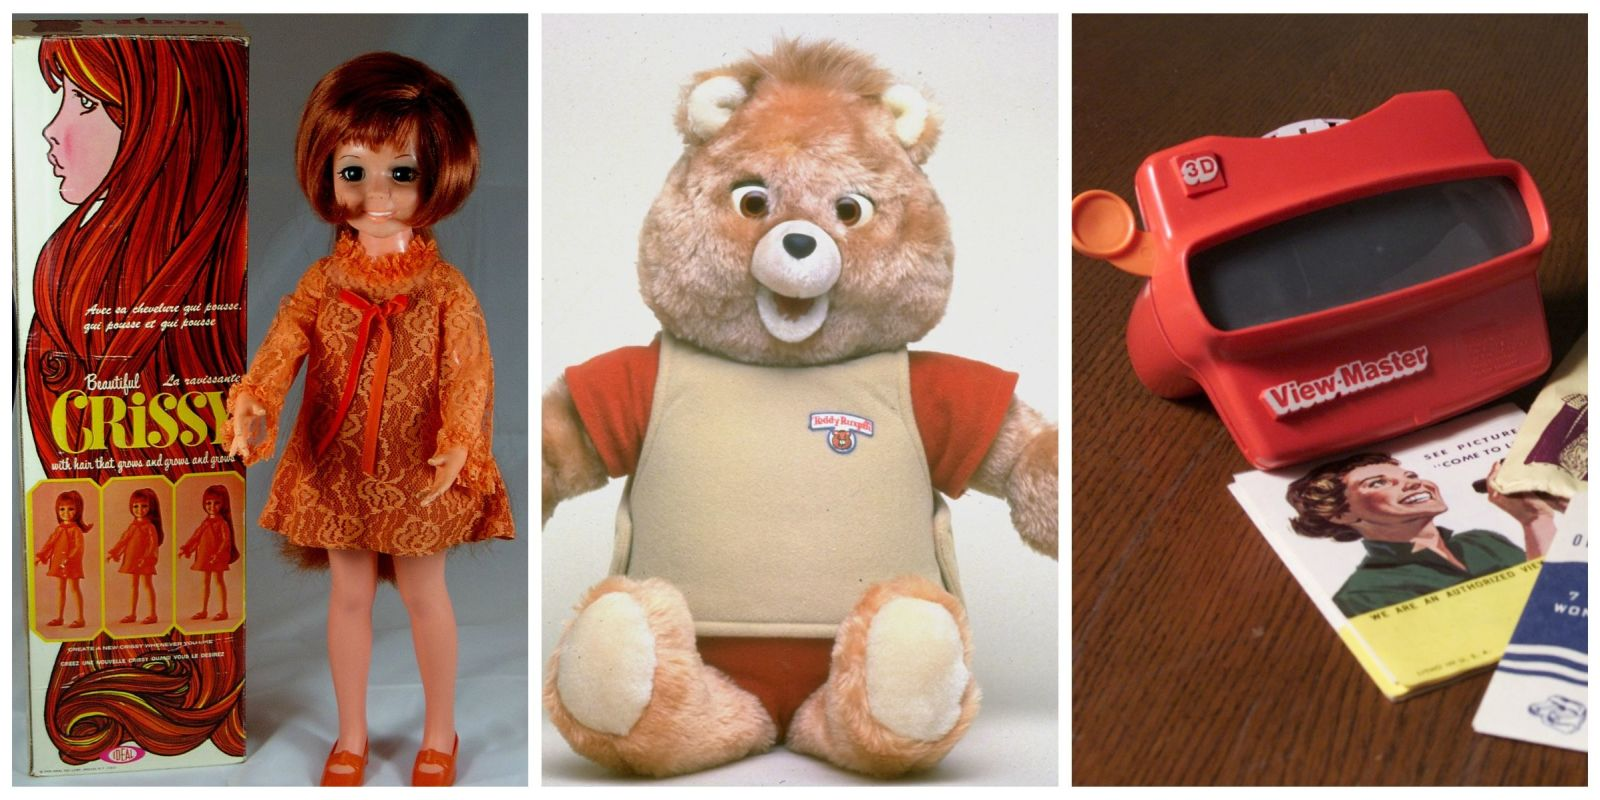 Old Toys From The 70s : Retro toys we almost forgot how much loved